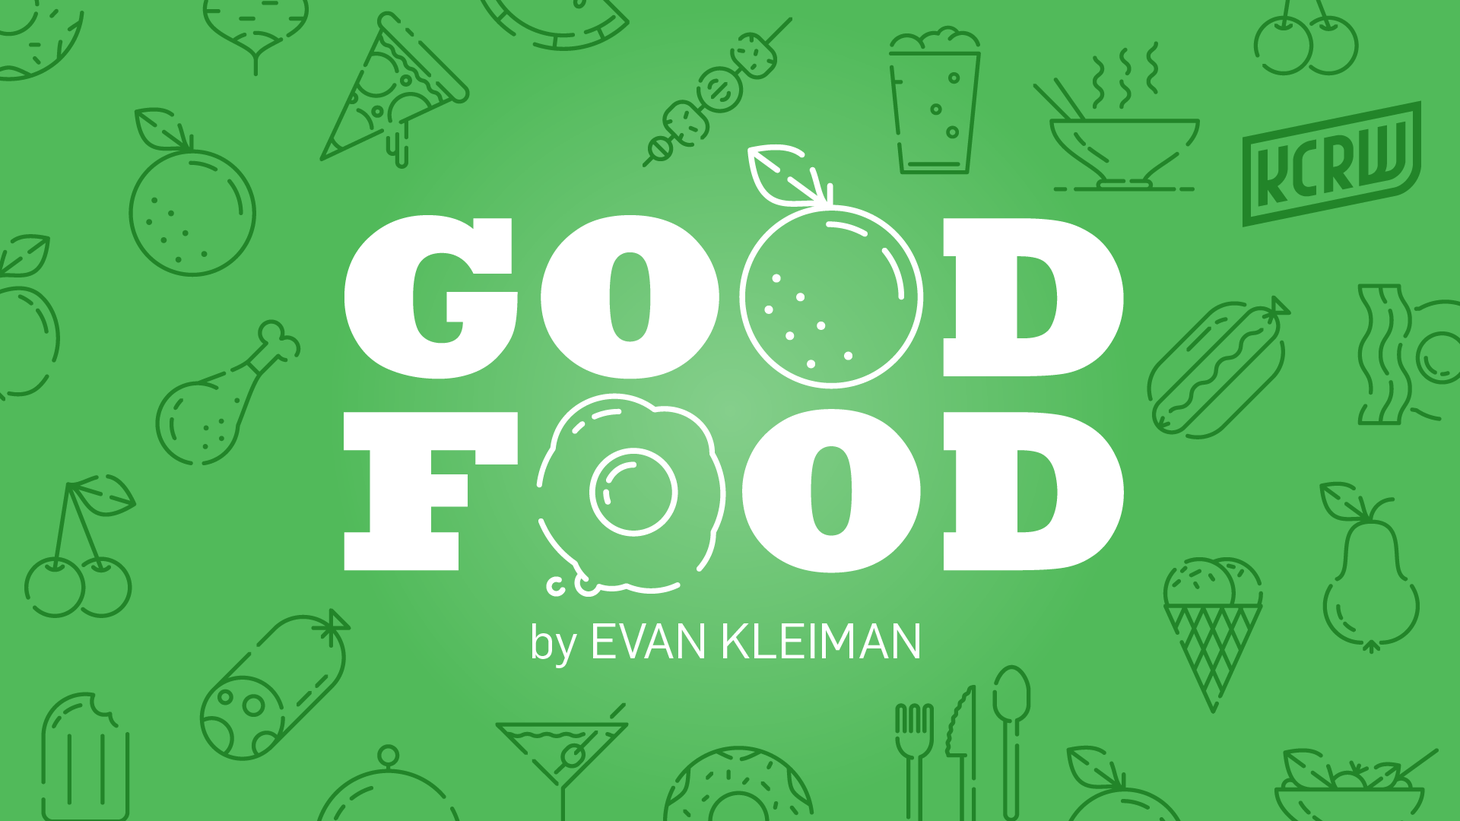 This week, Good Food presents a special program, produced by Jay Allison and the Kitchen Sisters.  It-s part of their ongoing series, which explores the world of Hidden Kitchens: street-corner cooking, legendary meals and eating traditions-how communities come together through food.